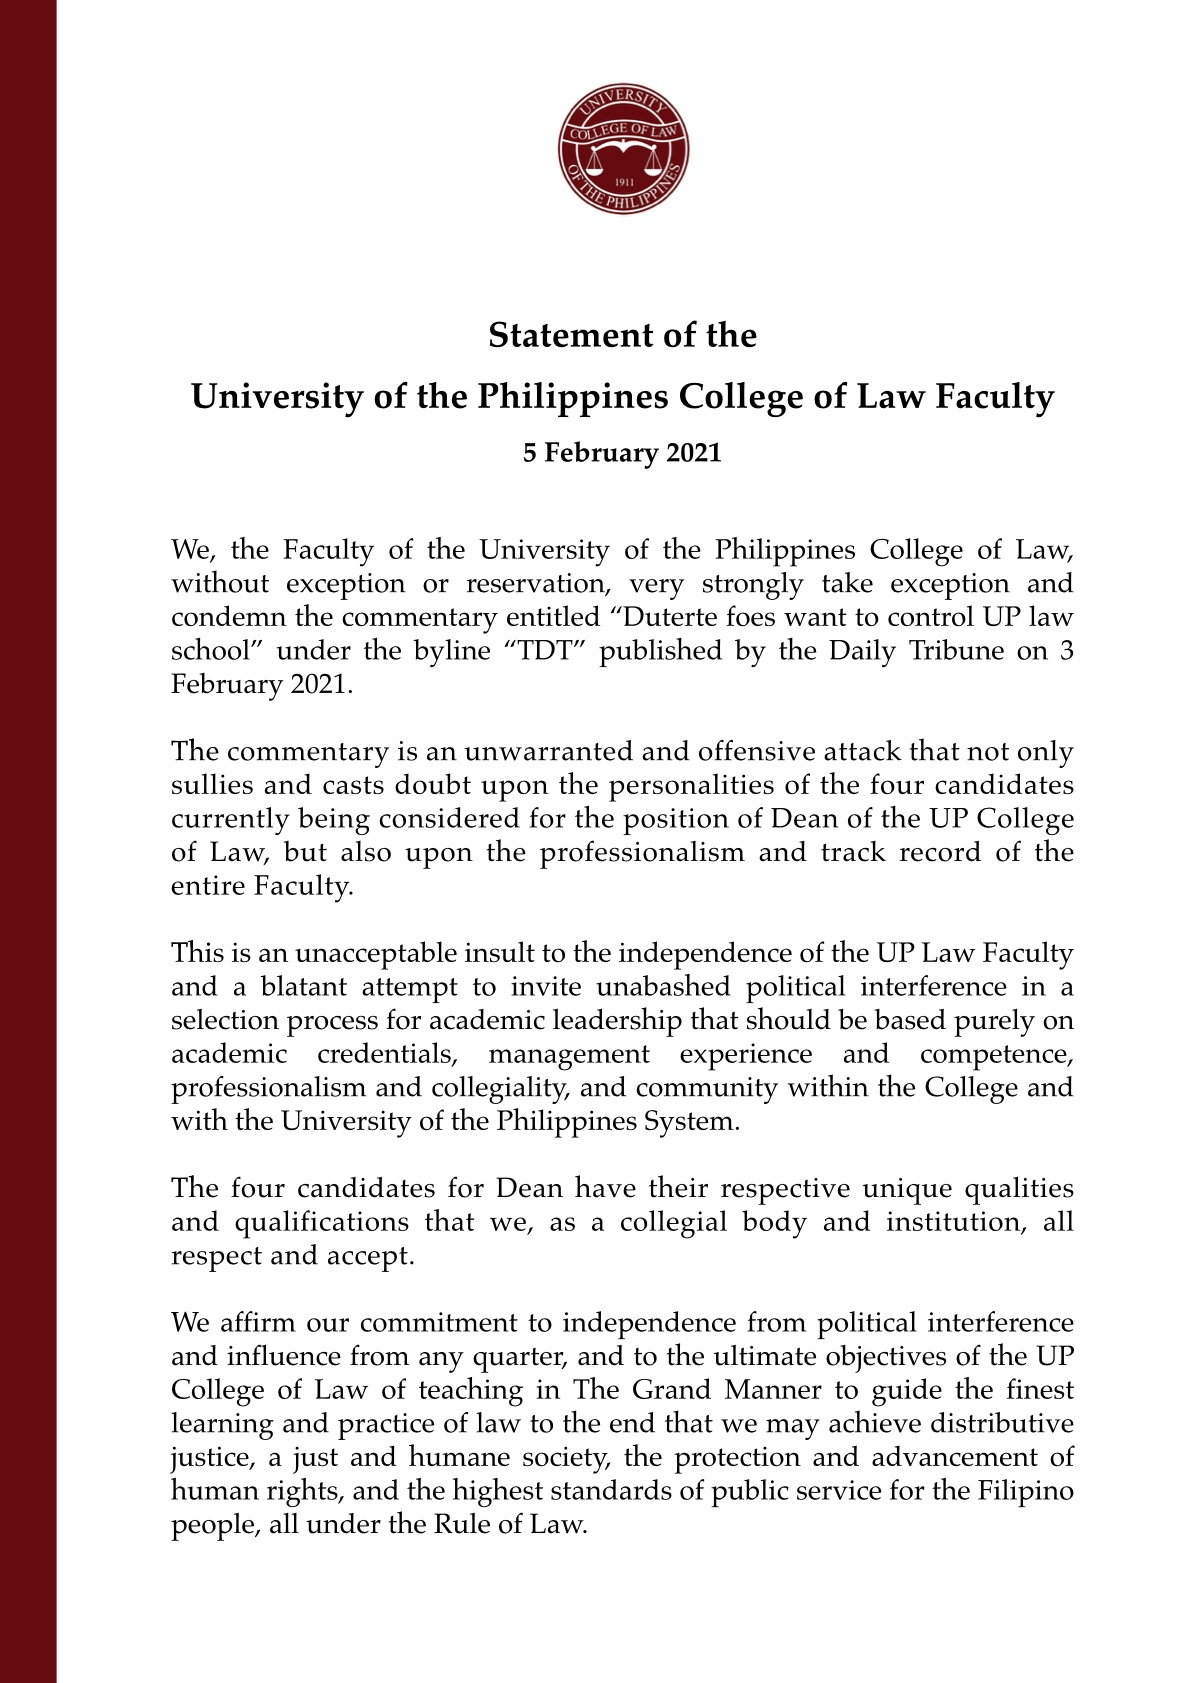 Statement of the University of the Philippines College of Law Faculty on Daily Tribune Commentary 5 February 2020